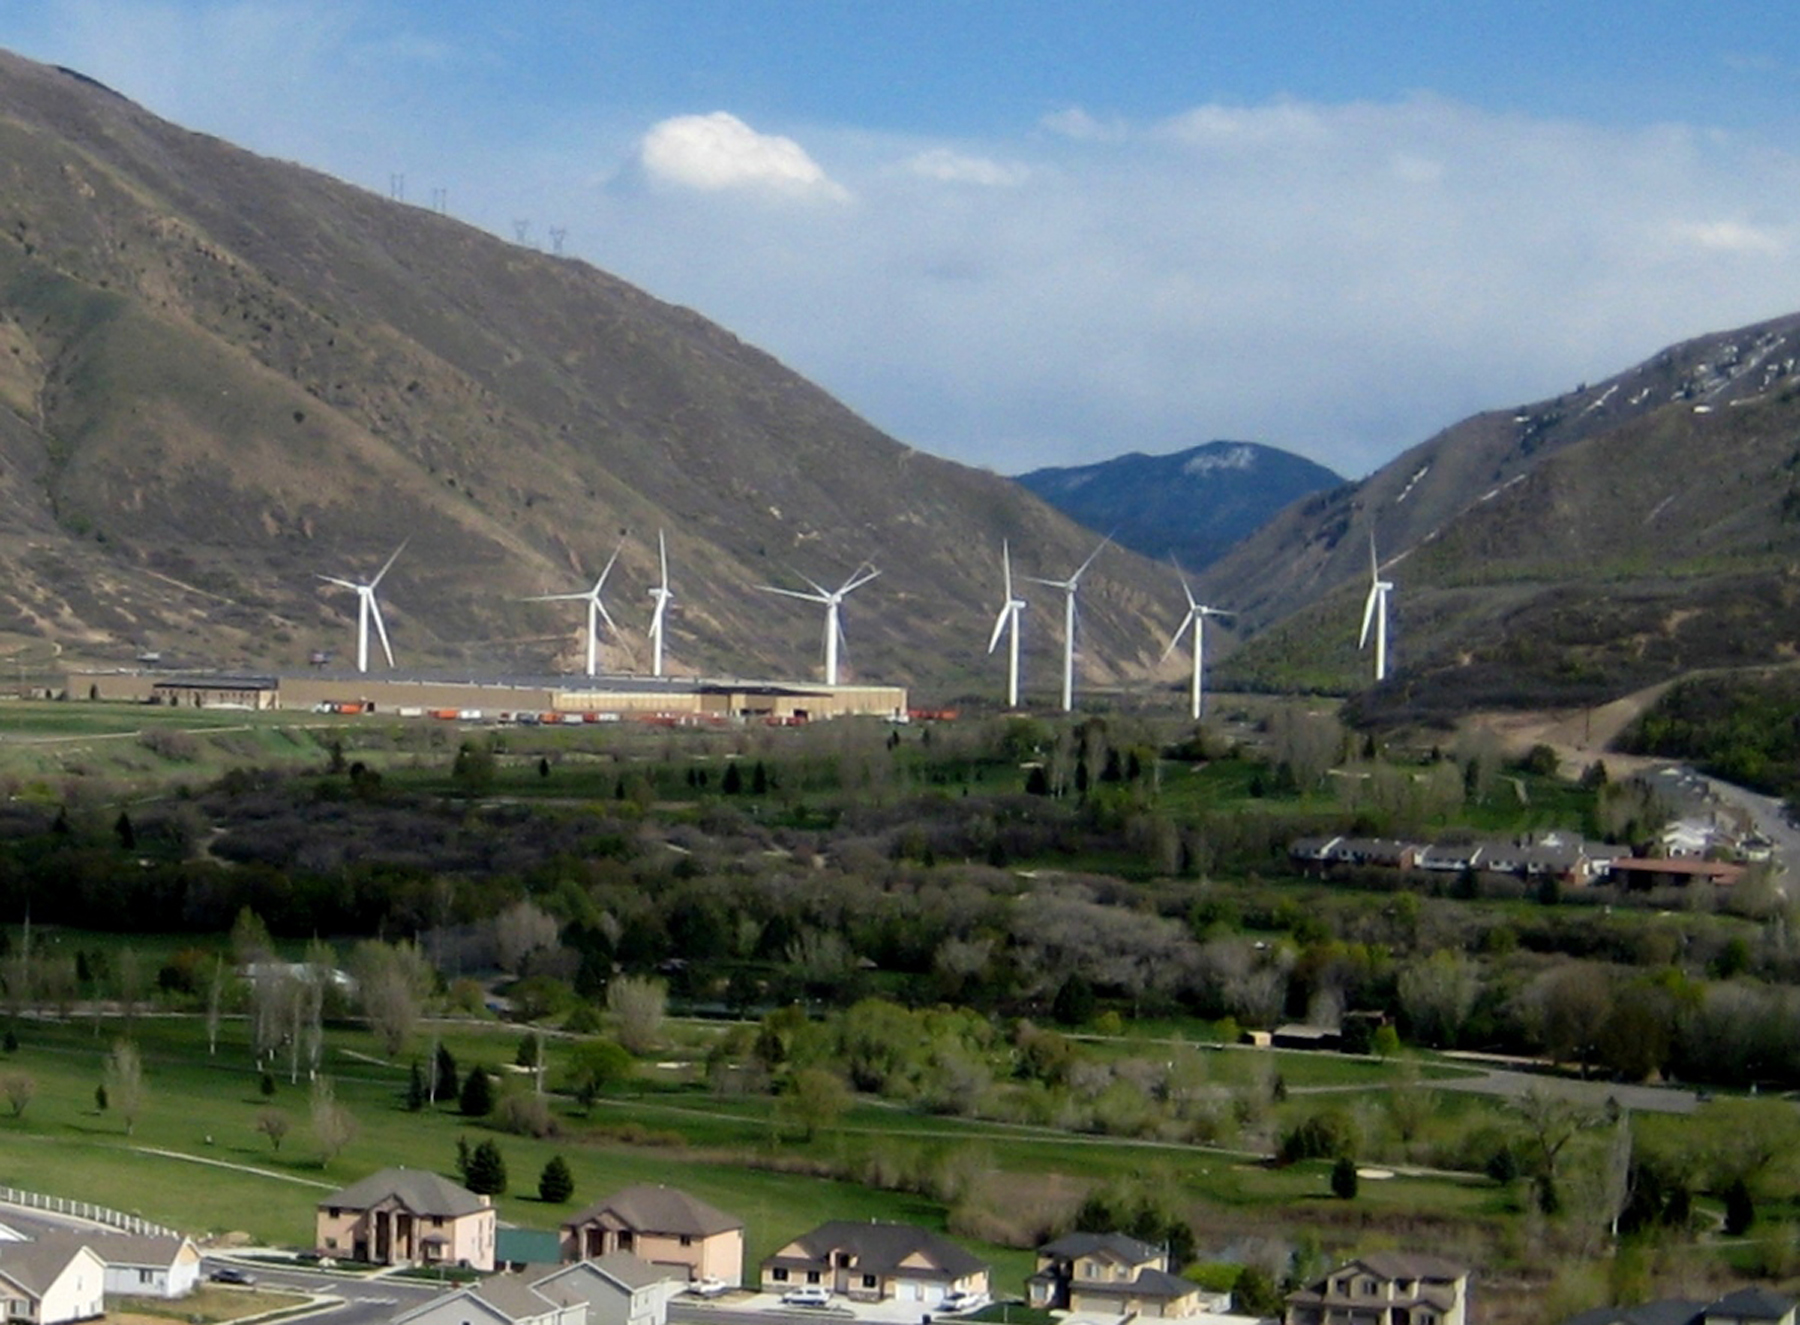 An example of the U utilizing renewable energy sources, like this wind farm in Spanish Fork, UT.